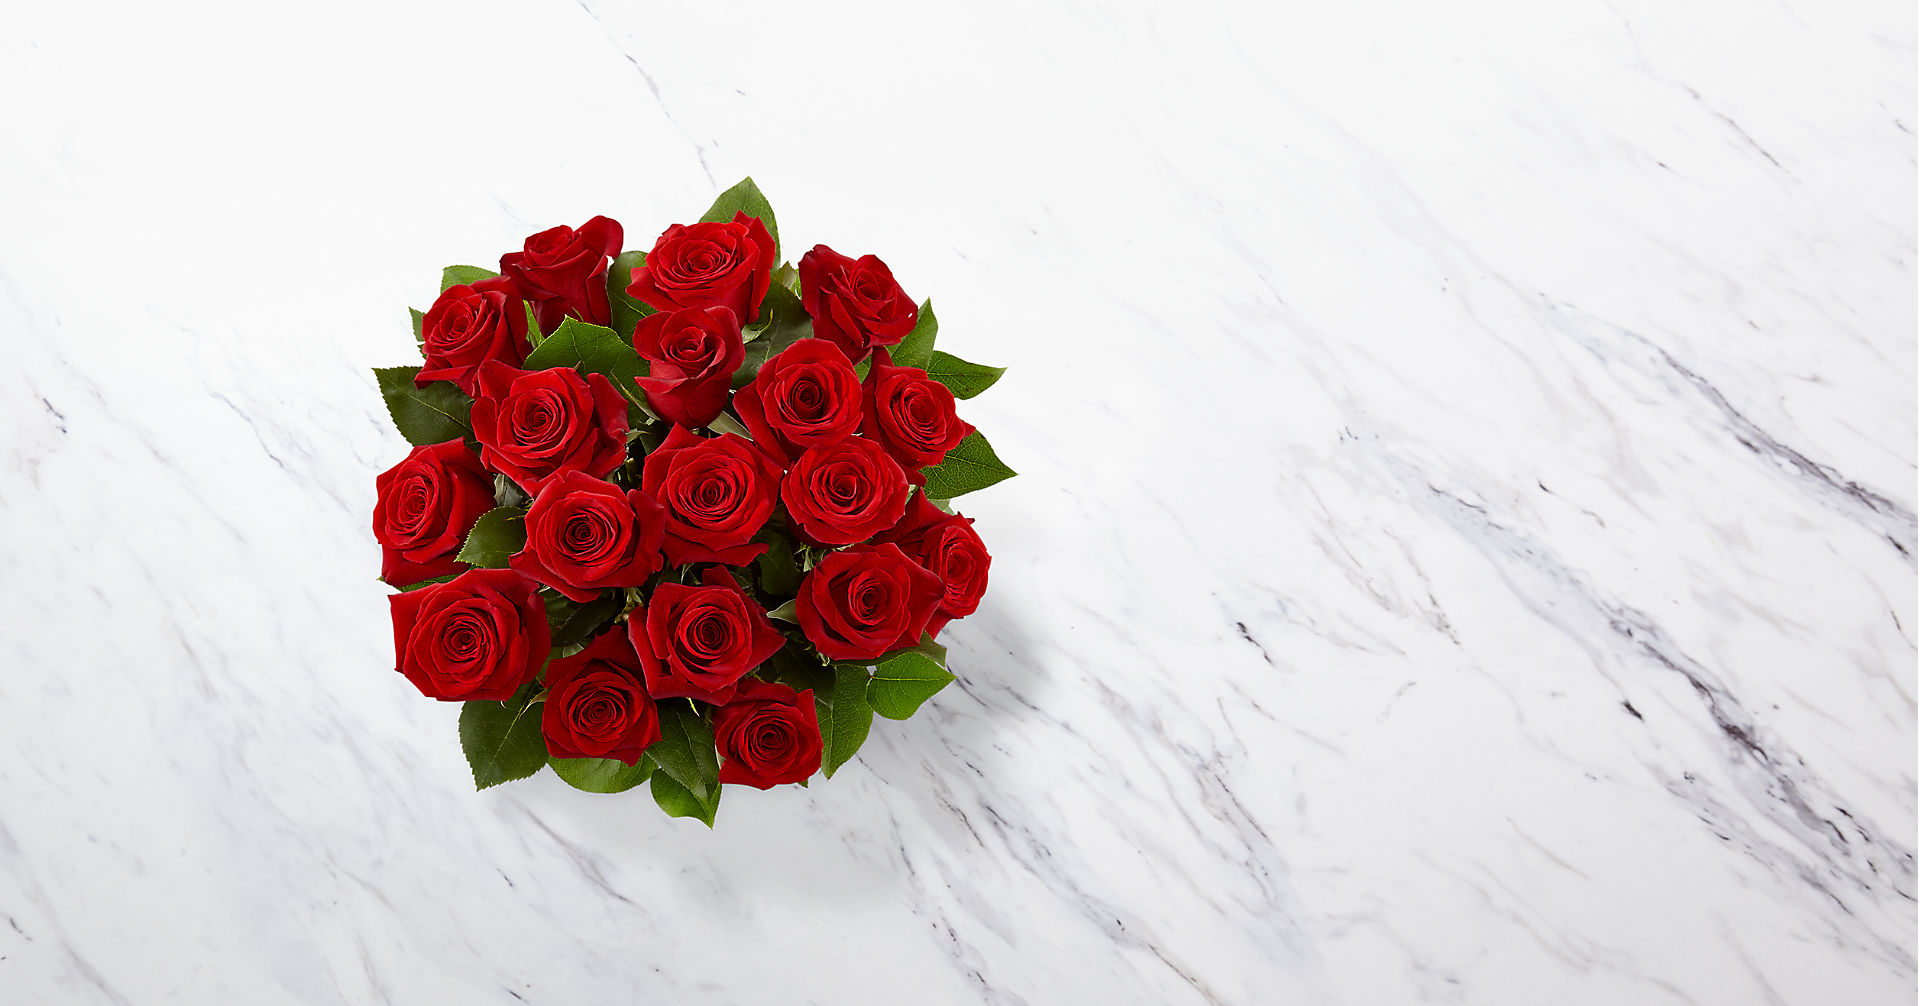 The Long Stem Red Rose Bouquet - Image 2 Of 3